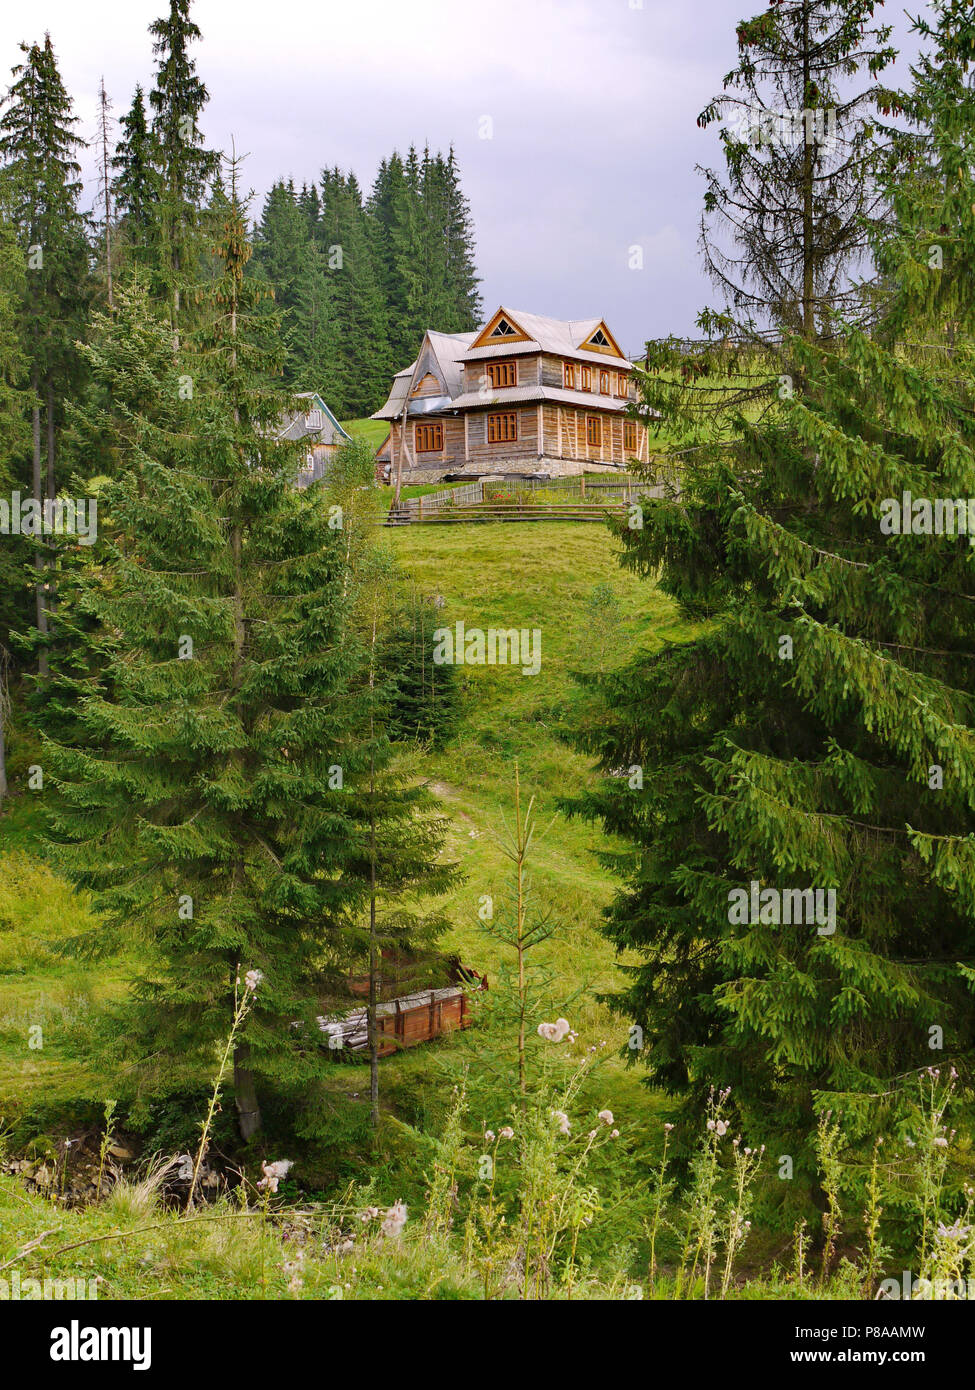 rural wooden house in 2 floors on the slope between green spruces . For your design - Stock Image